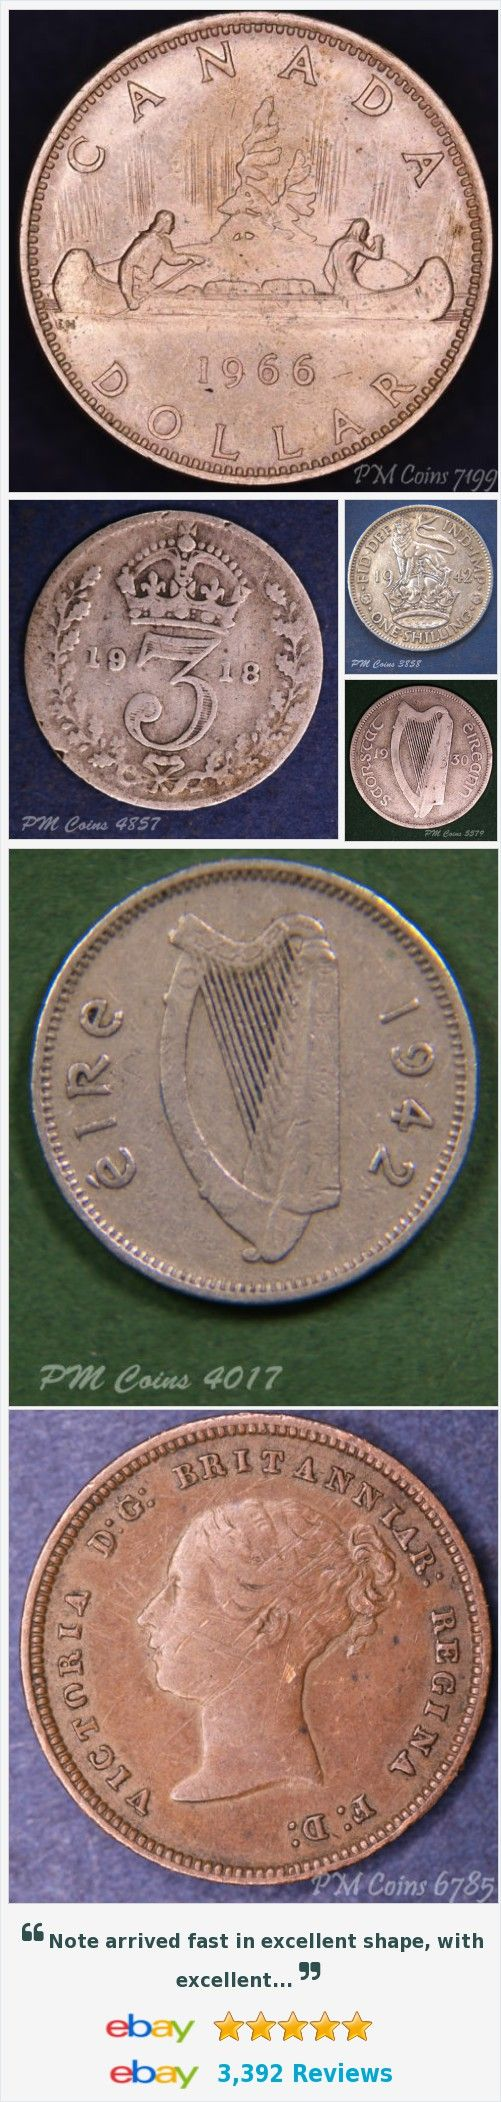 Ireland - Coins and Banknotes, Irish Coins - decimal items in PM Coin Shop store on eBay! http://stores.ebay.co.uk/PM-Coin-Shop/_i.html?rt=nc&_sid=1083015530&_trksid=p4634.c0.m14.l1513&_pgn=18